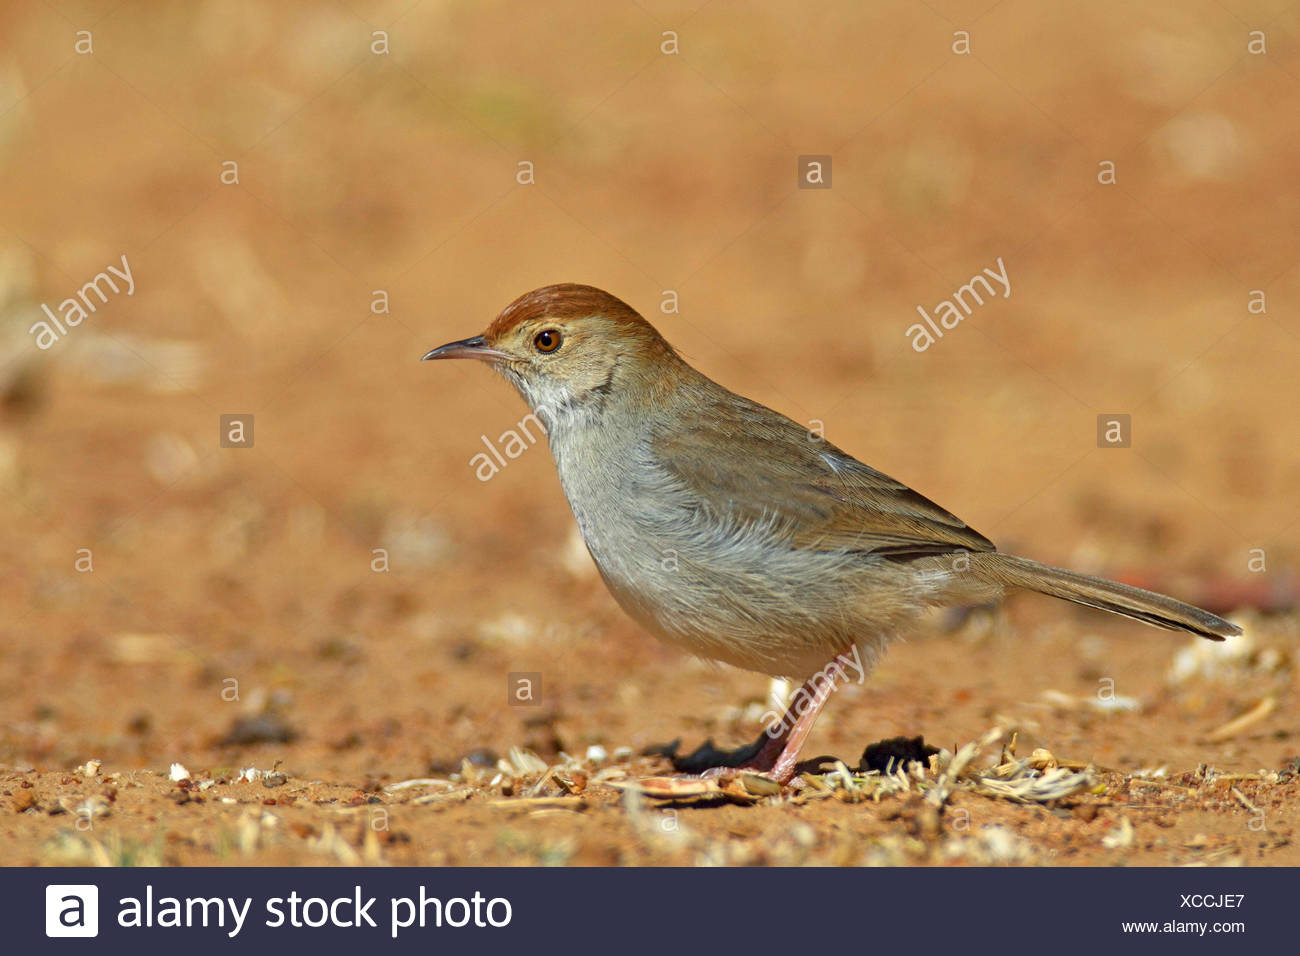 Piping cisticola (Cisticola fulvicapilla), standing on the ground, South Africa, North West Province - Stock Image